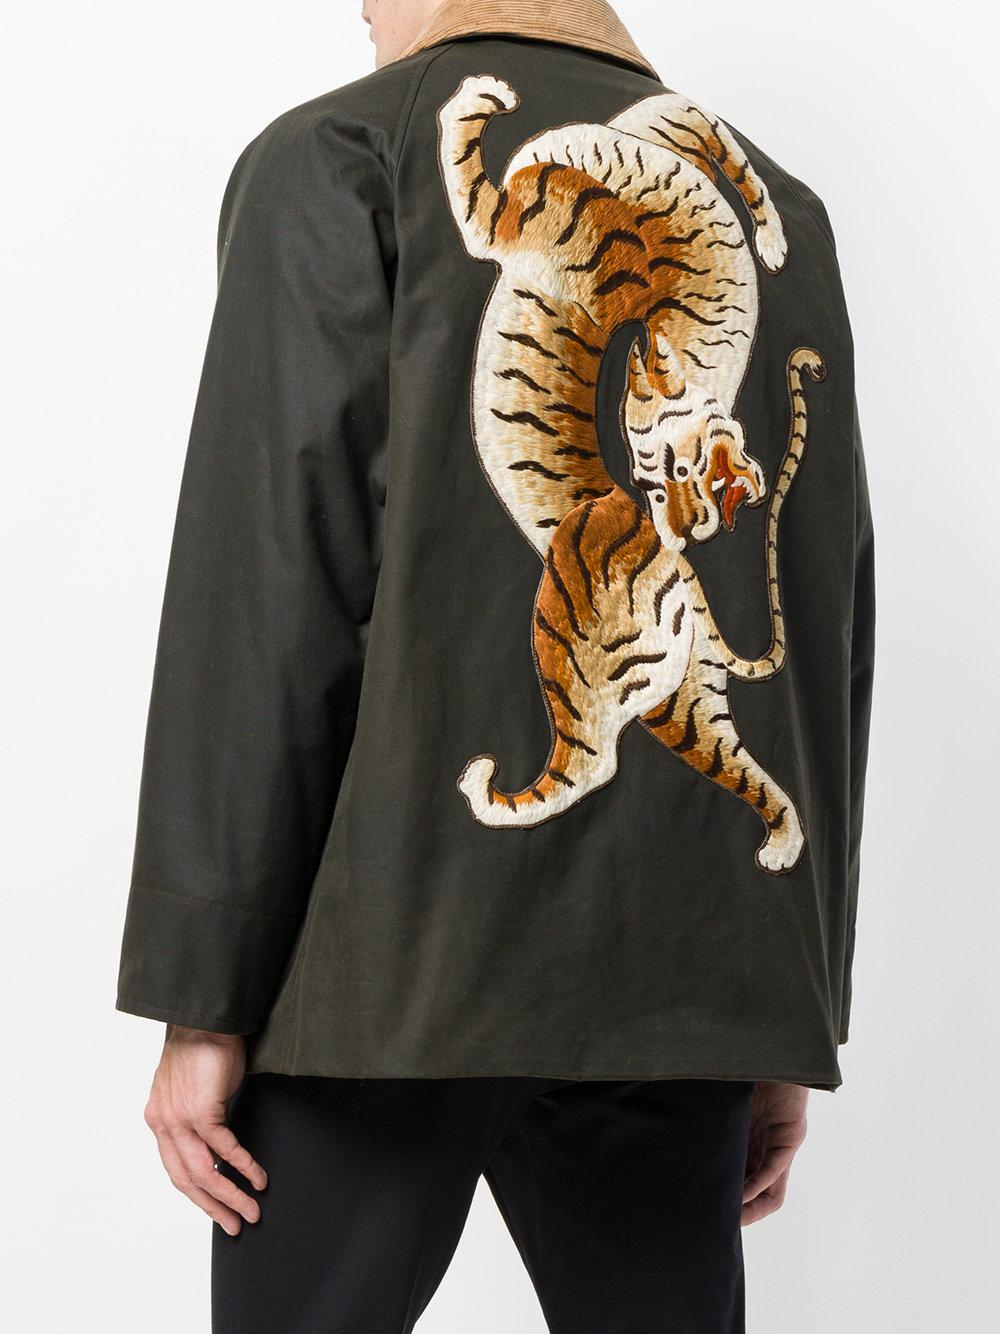 Gucci Cotton Tiger Embroidered Jacket In Green For Men